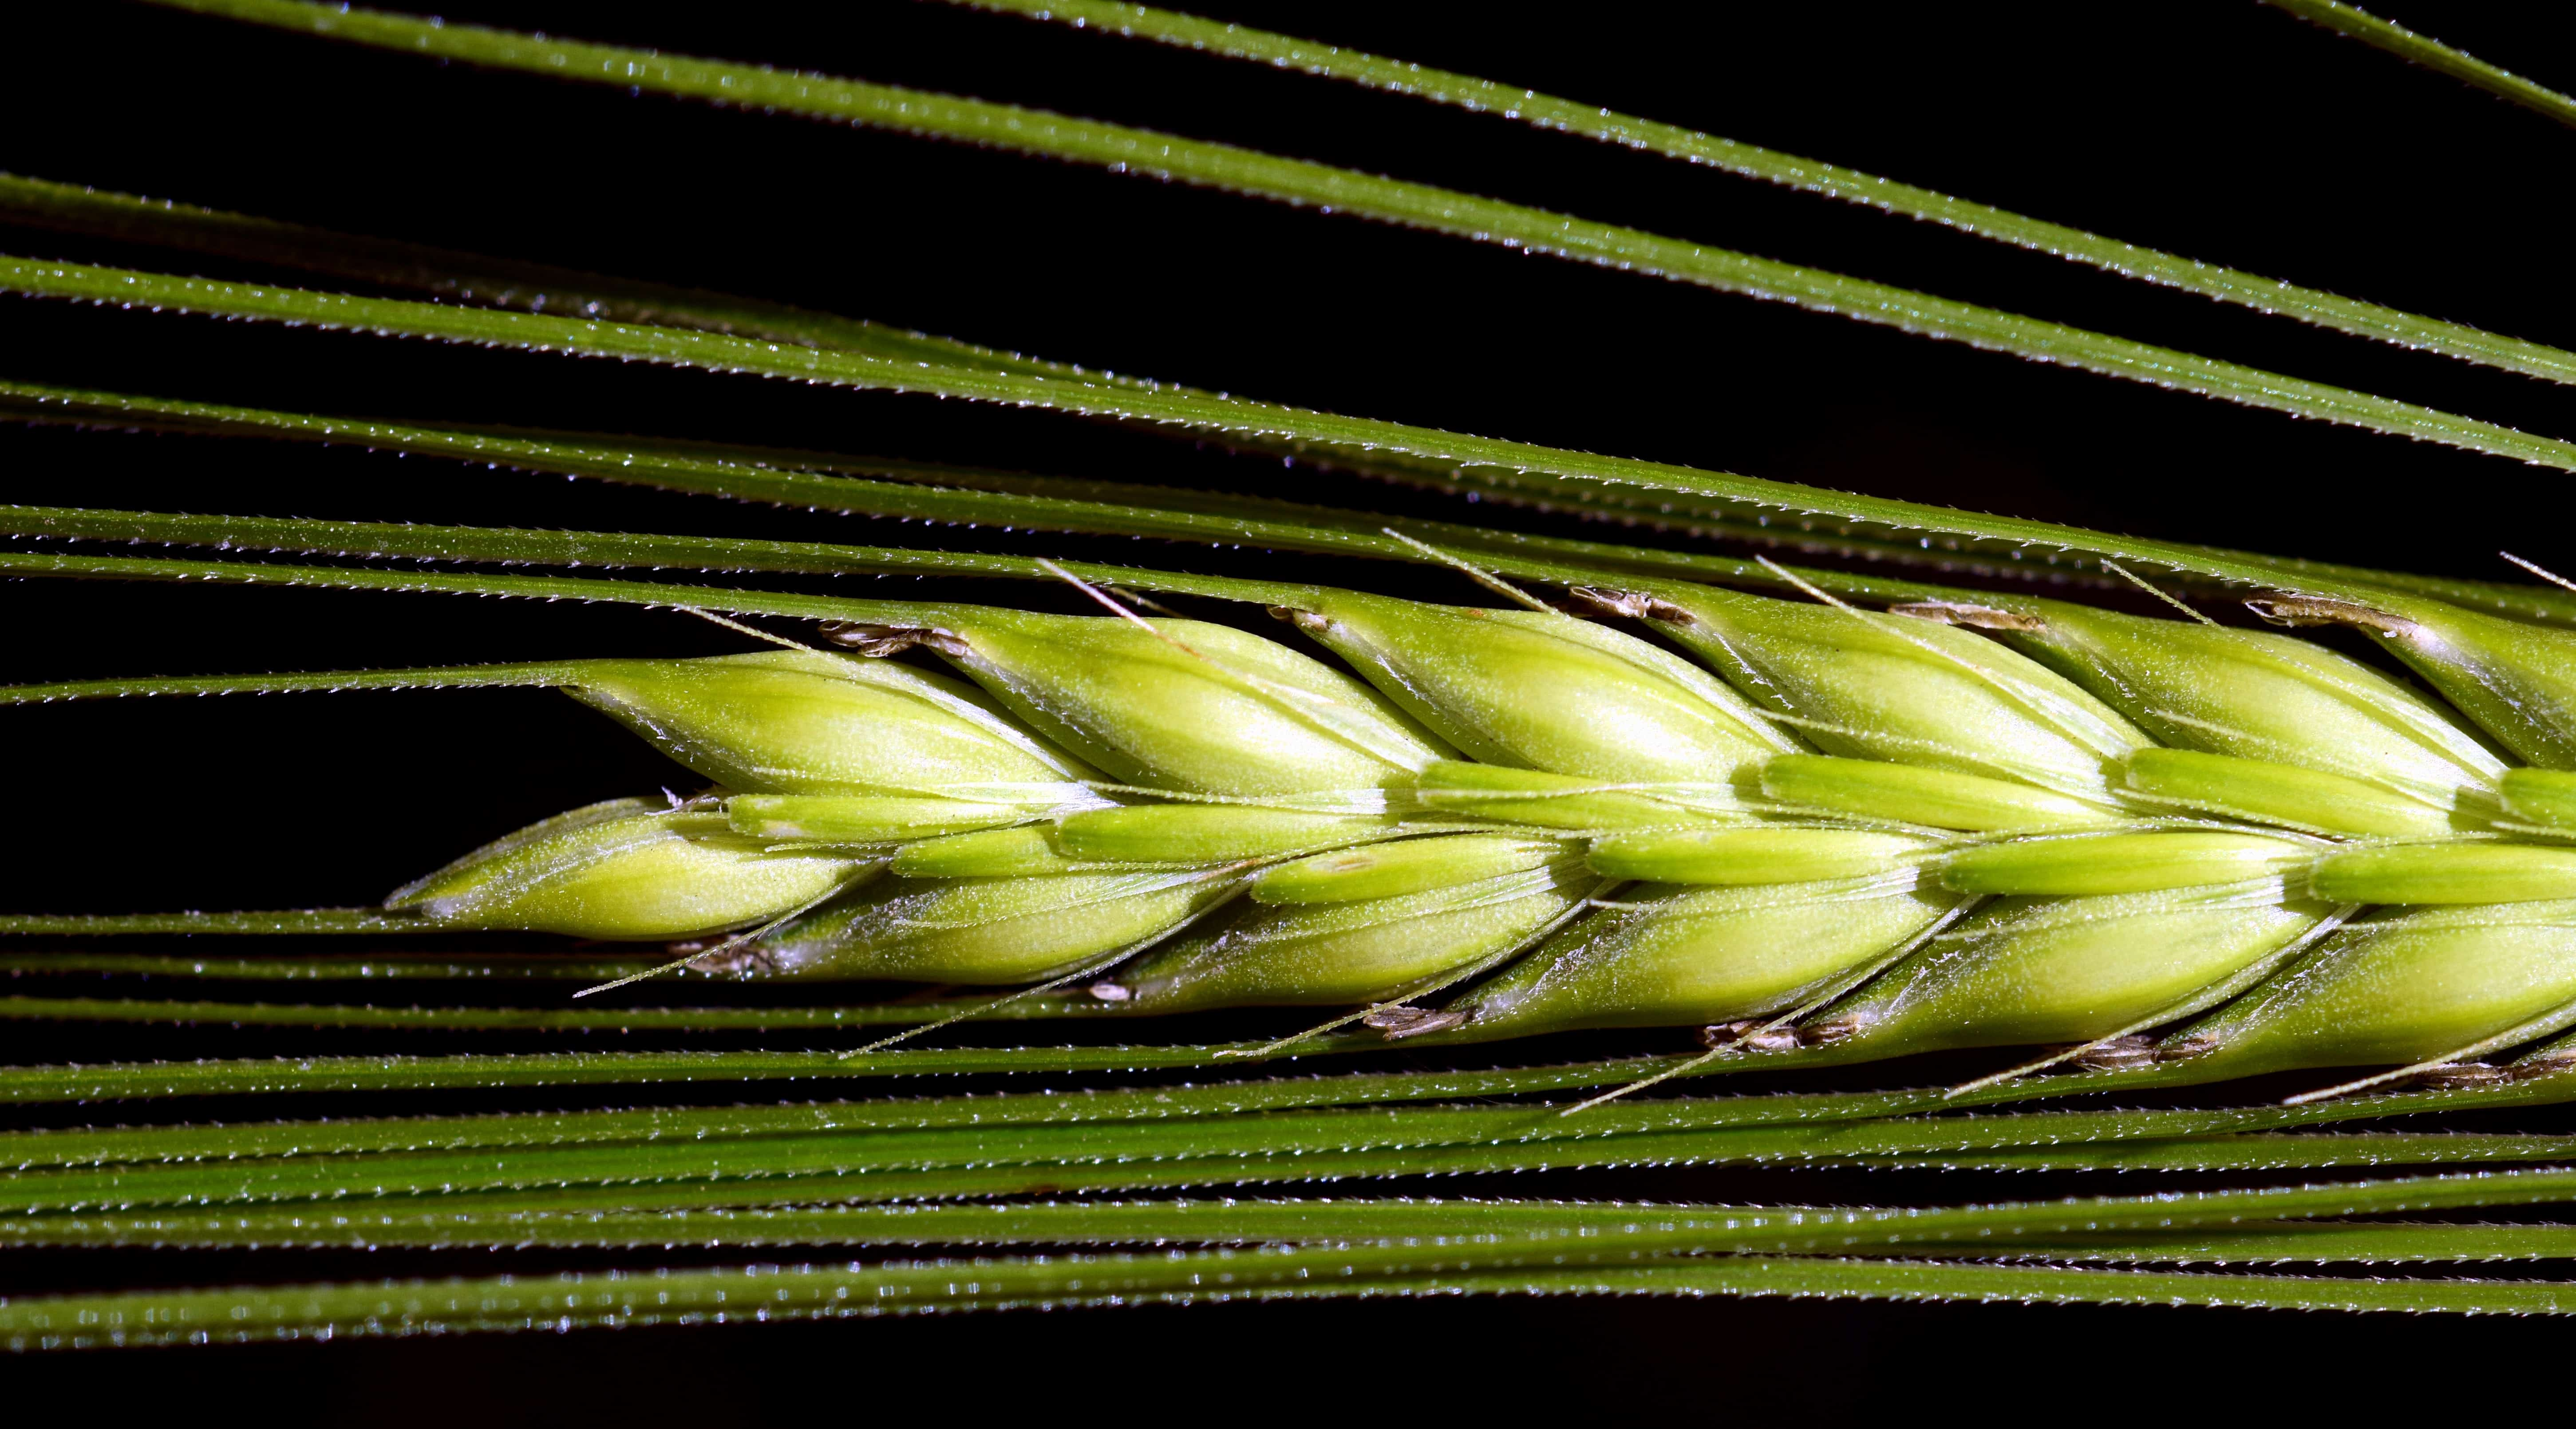 Free picture flora food summer grain plant macro detaill agriculture grain